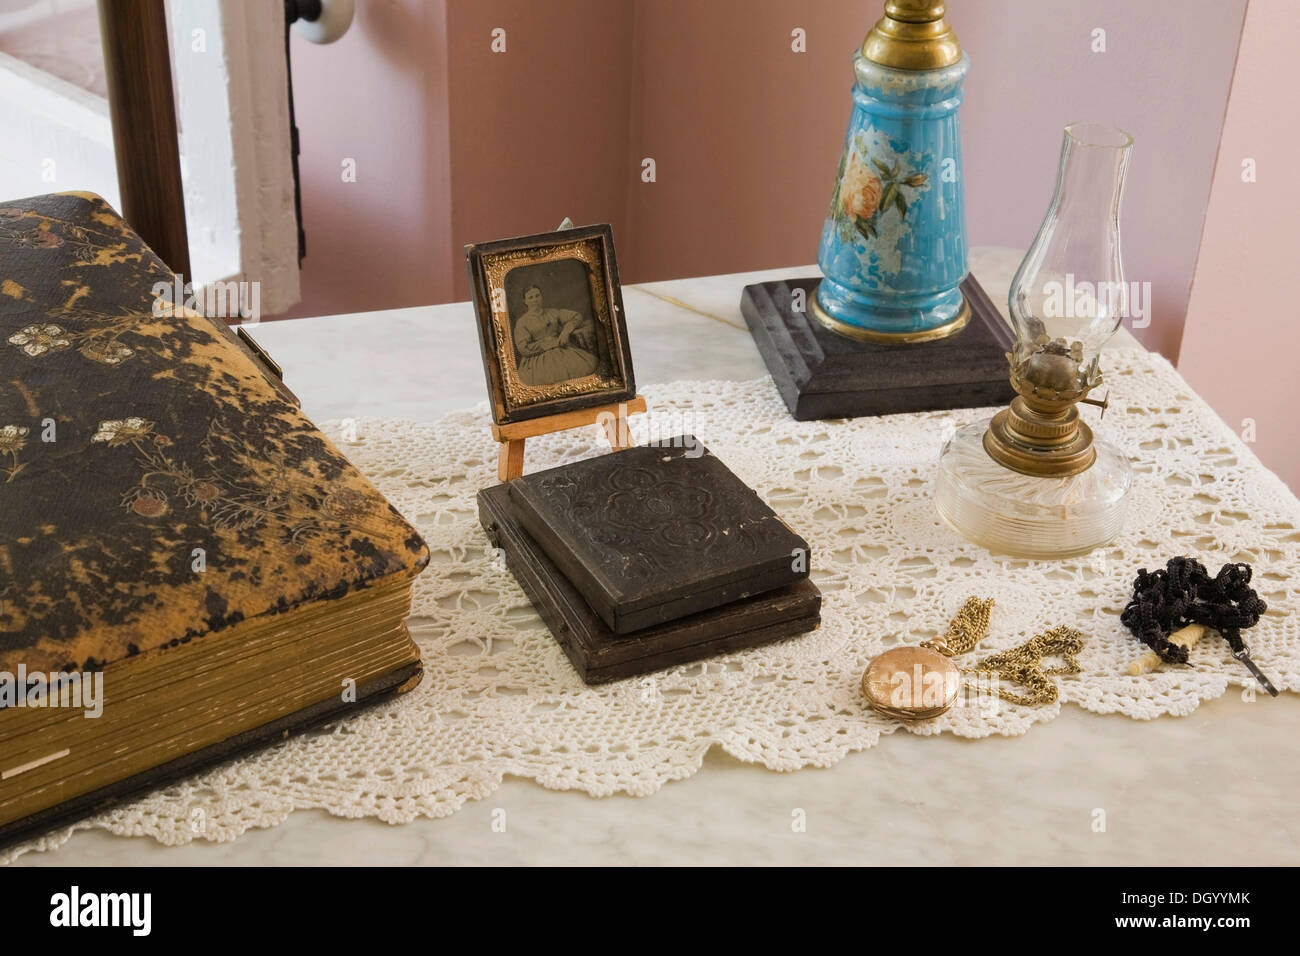 Antique collectibles, Quebec, Canada - This image is property released for book, calendar, magazine, newspaper and editorial use - Stock Image